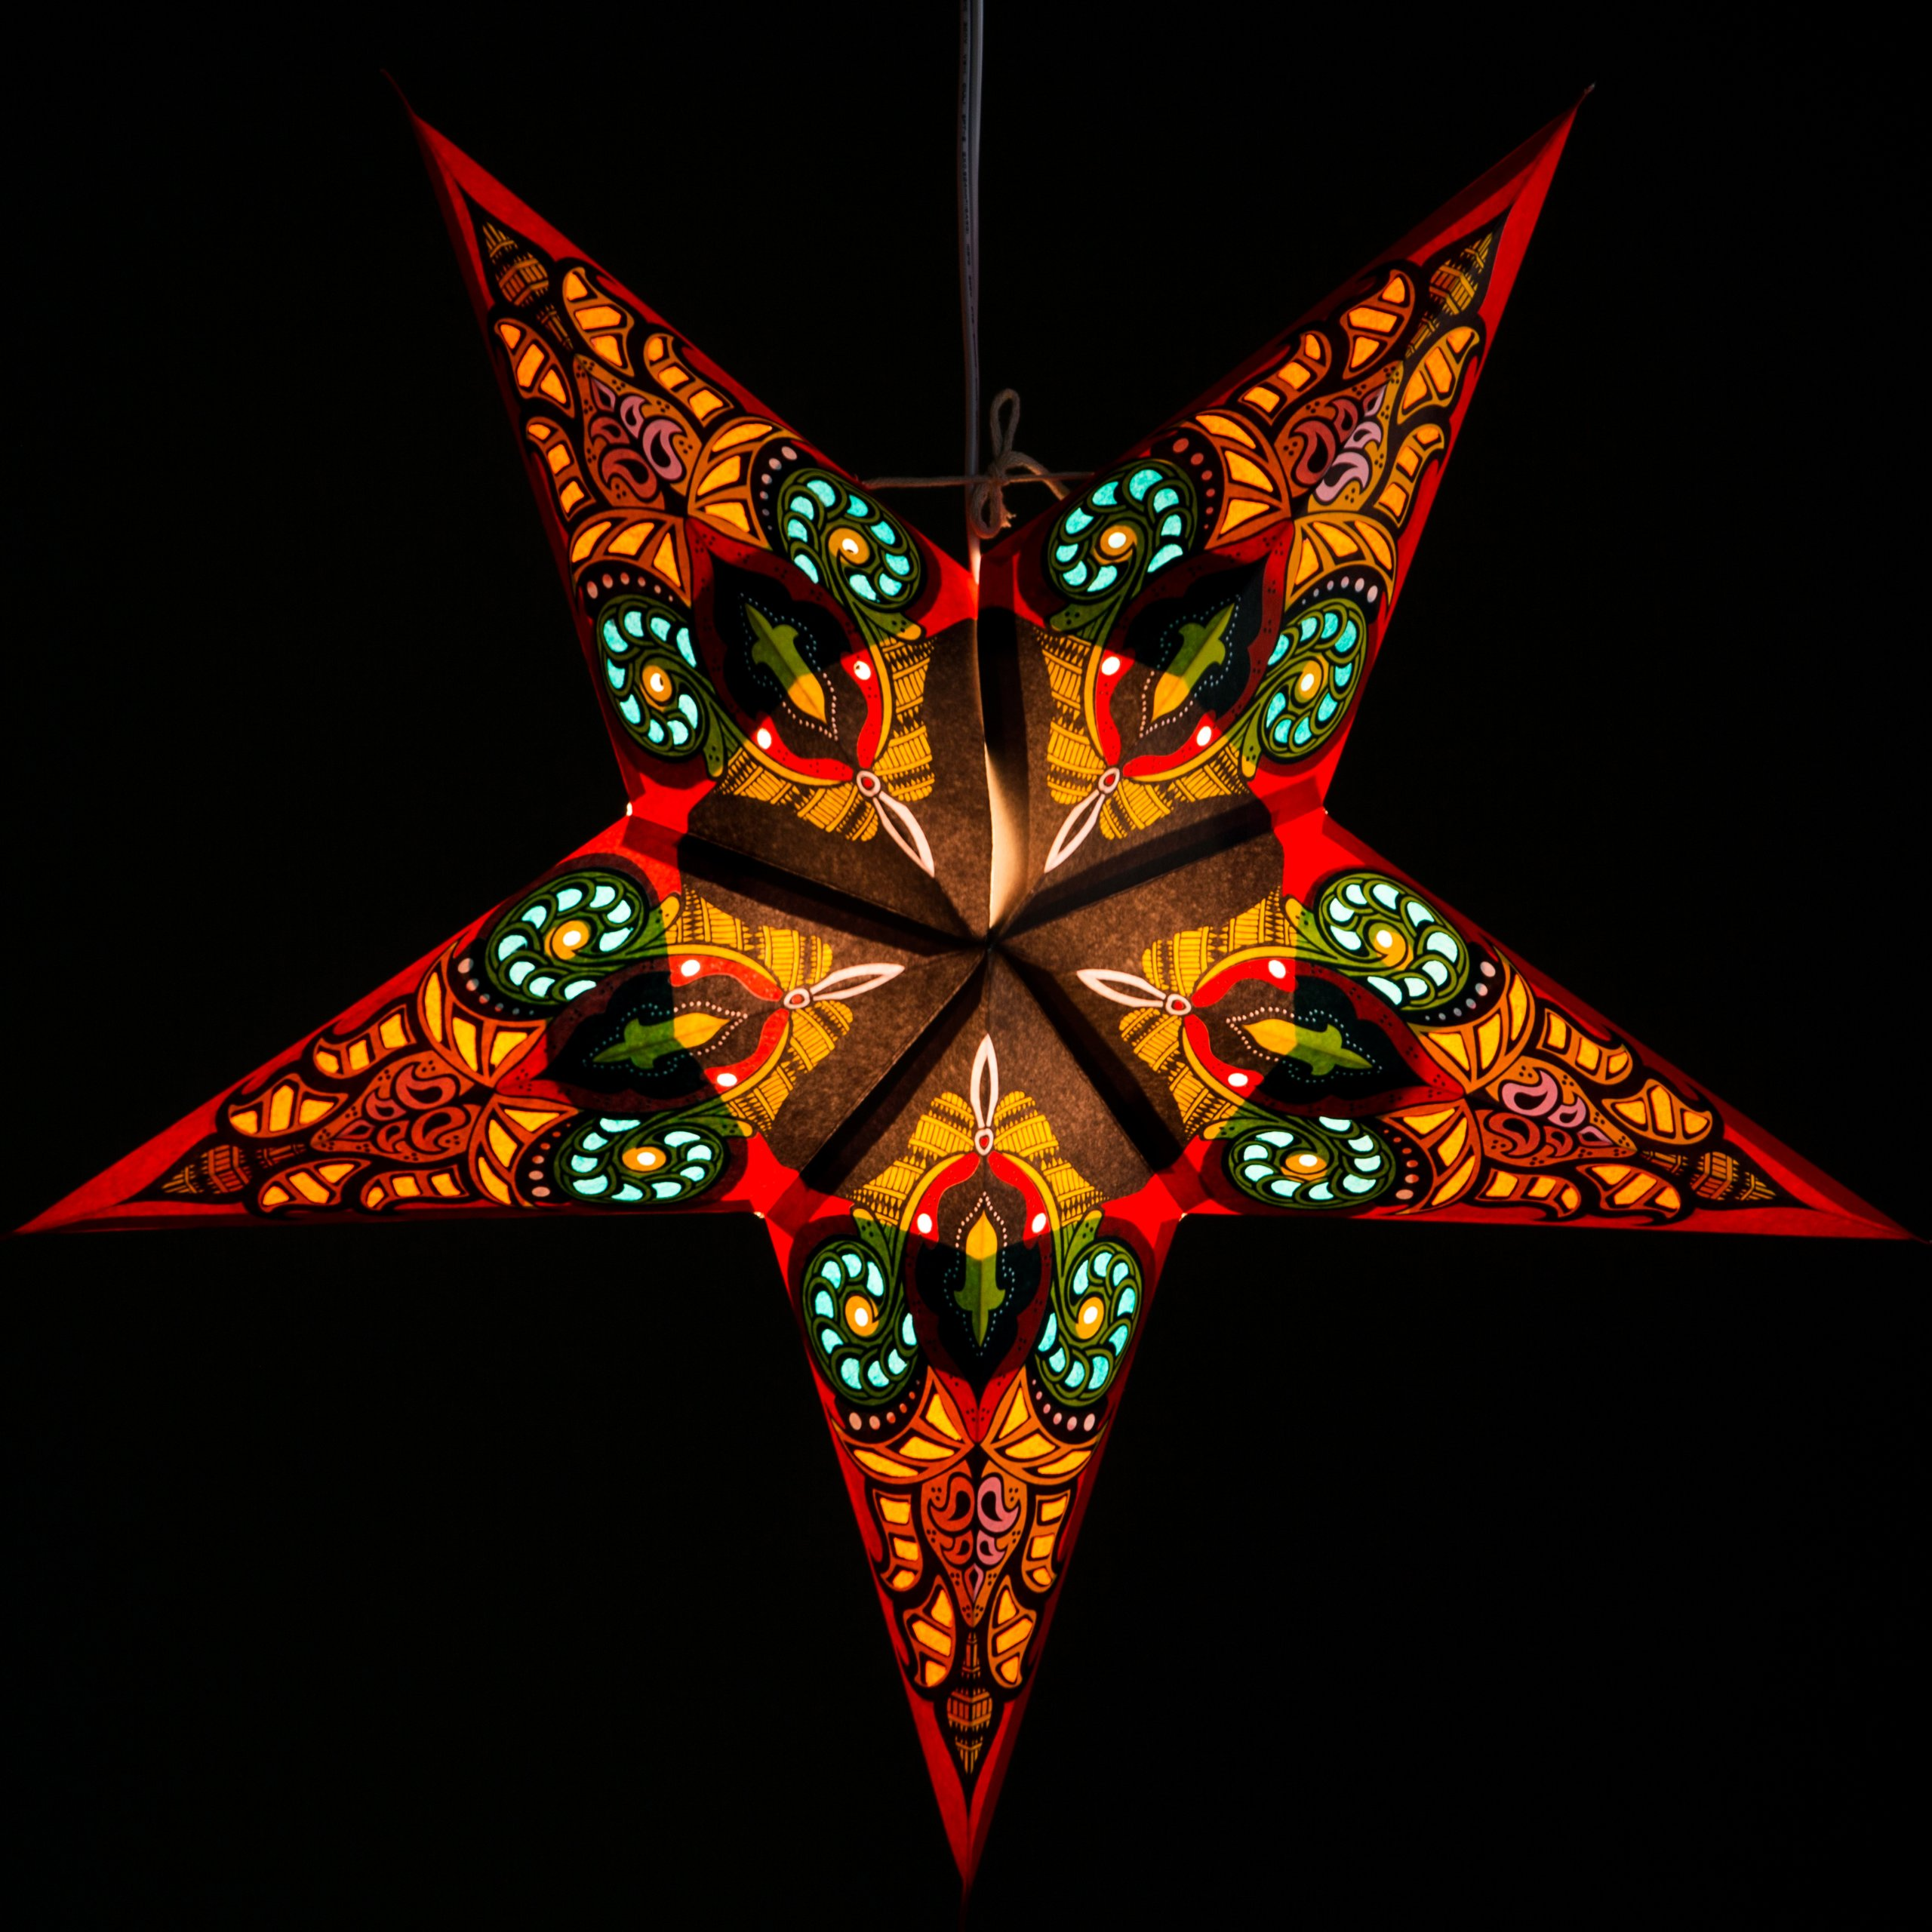 Red Mango Paper Star Lantern with 12 Foot Power Cord Included by Hometown Evolution, Inc. (Image #3)